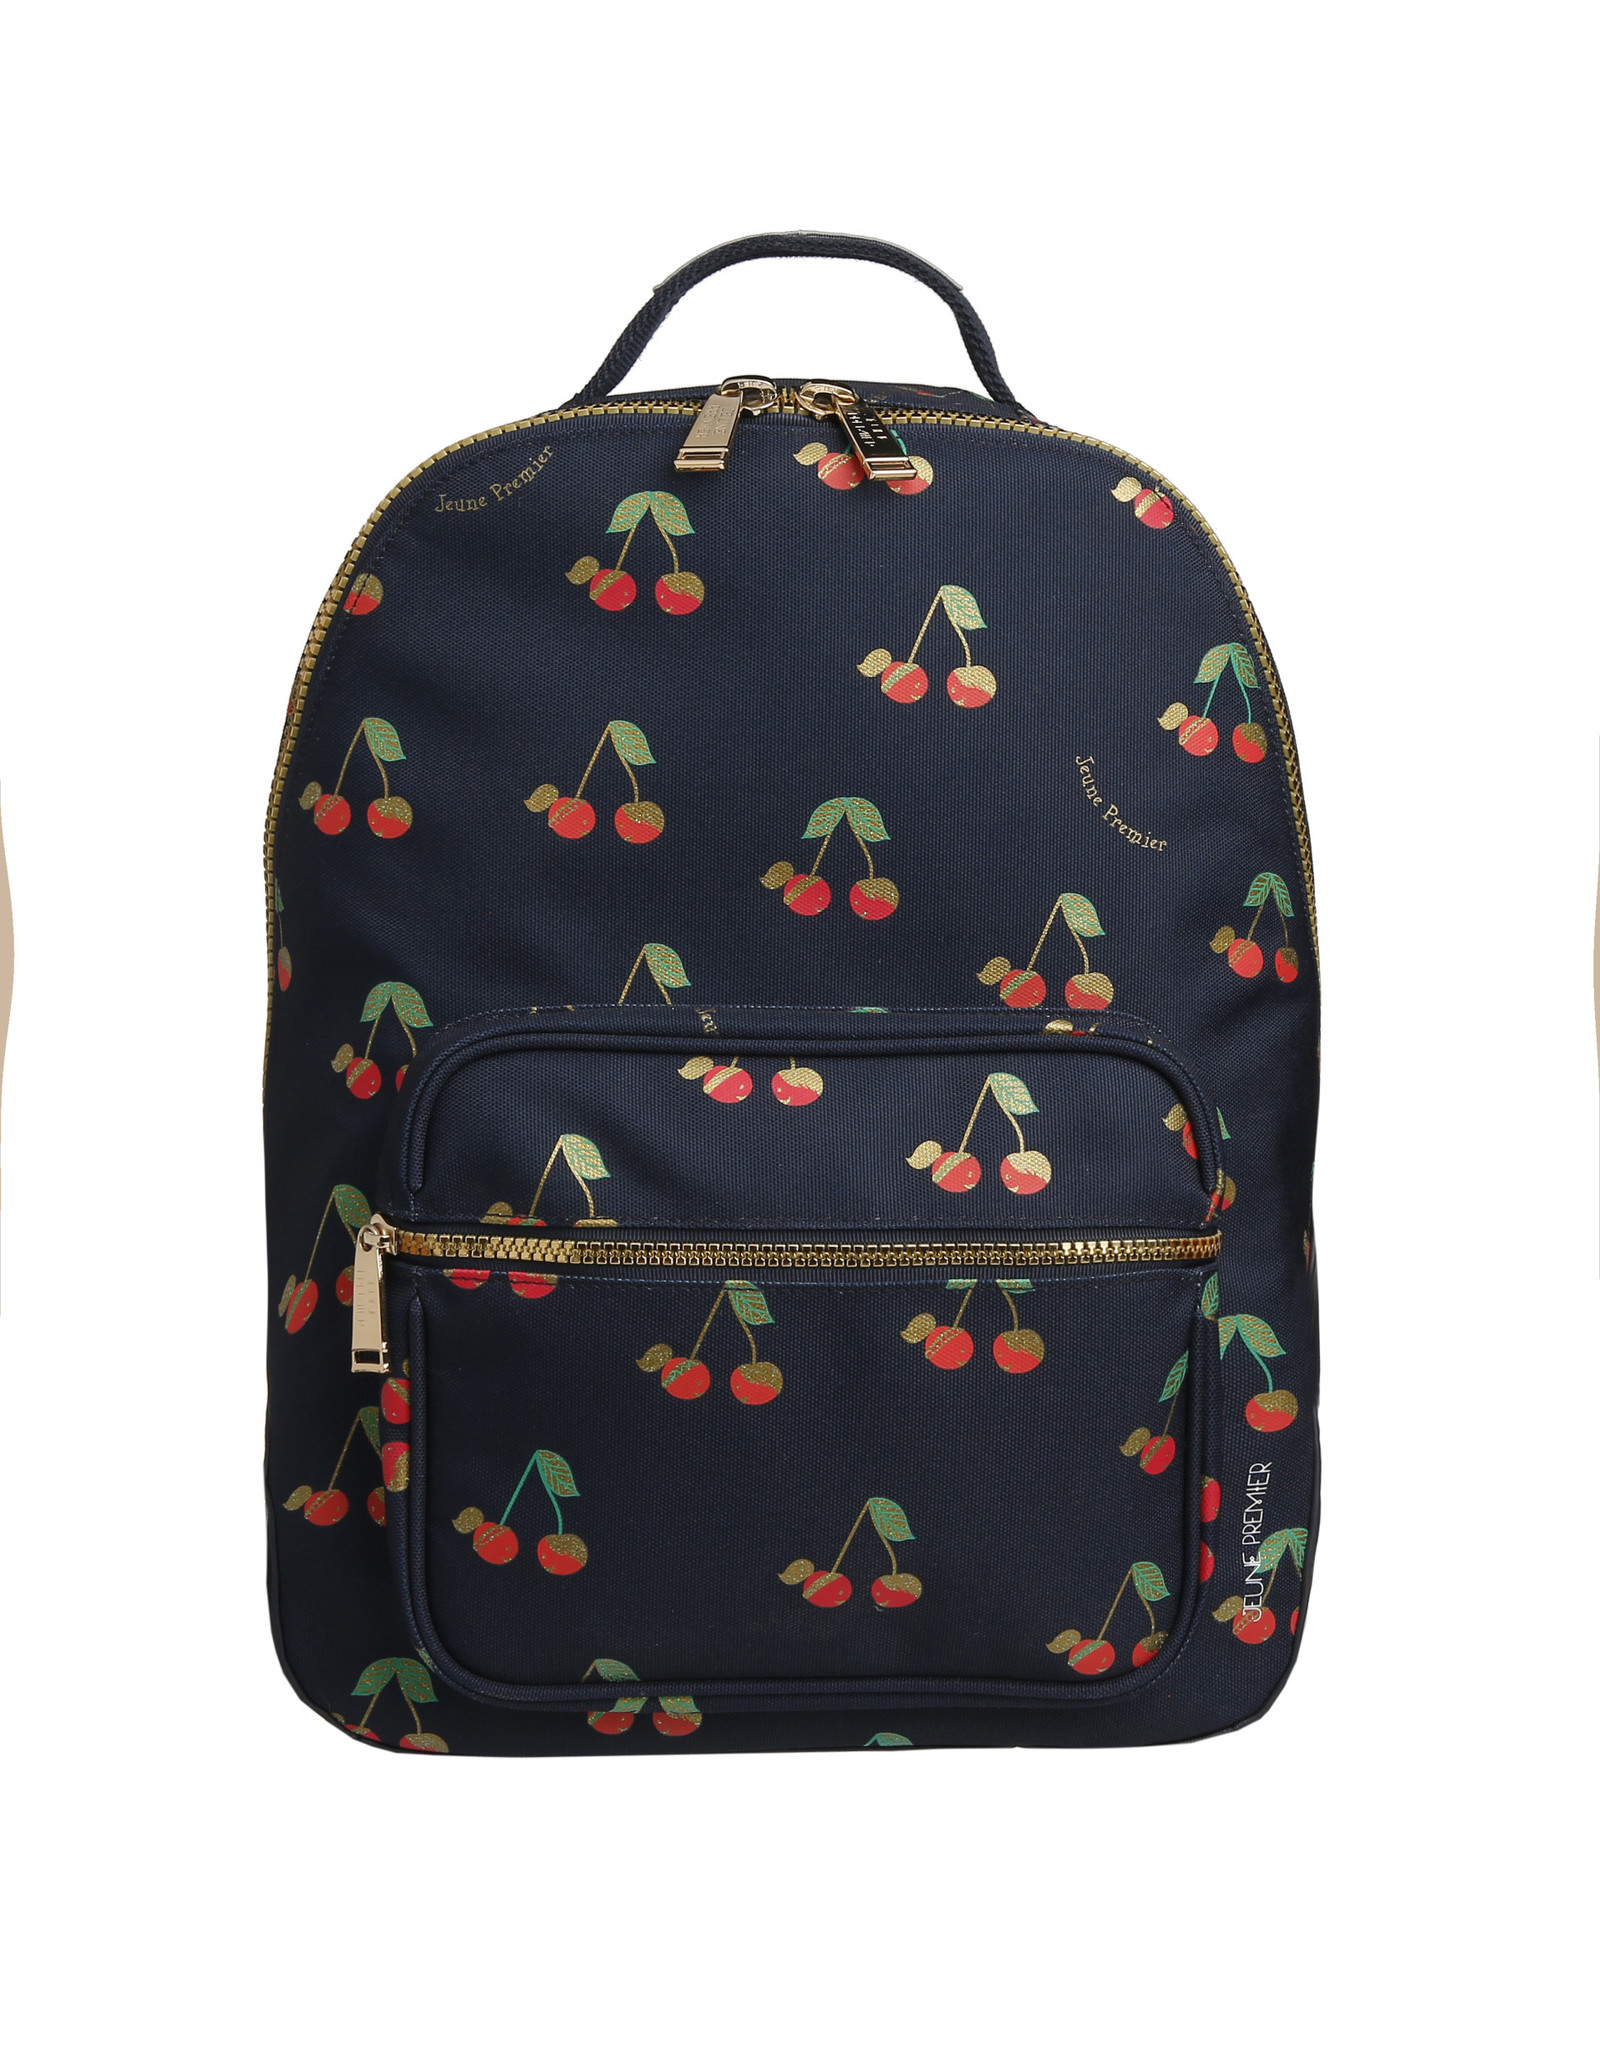 JEUNE PREMIER JEUNE PREMIER BOBBIE BACKPACK LOVE CHERRIES